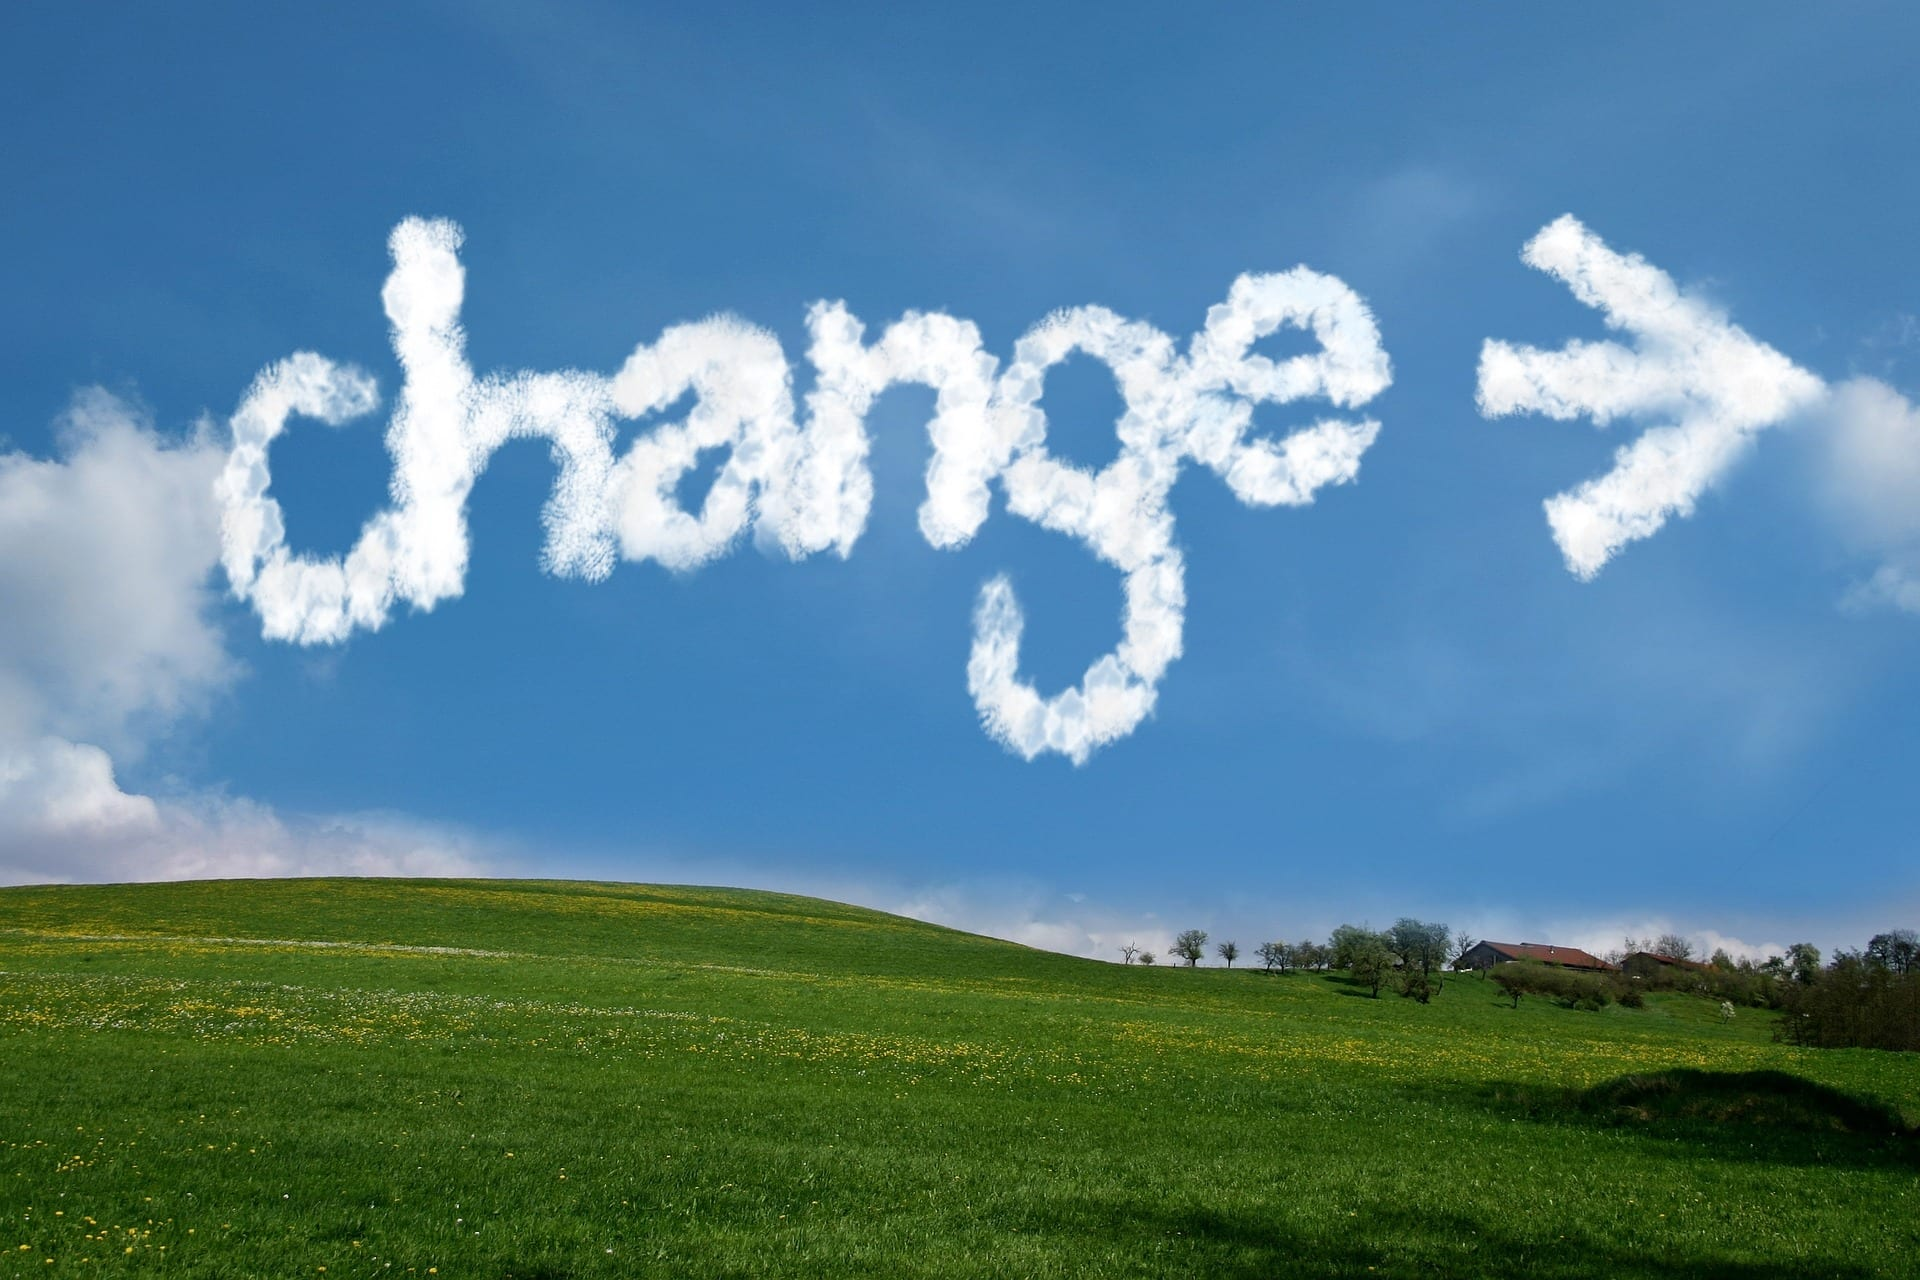 """A landscape with the word """"CHANGE,"""" along with an arrow pointing to the right, written in the clouds."""